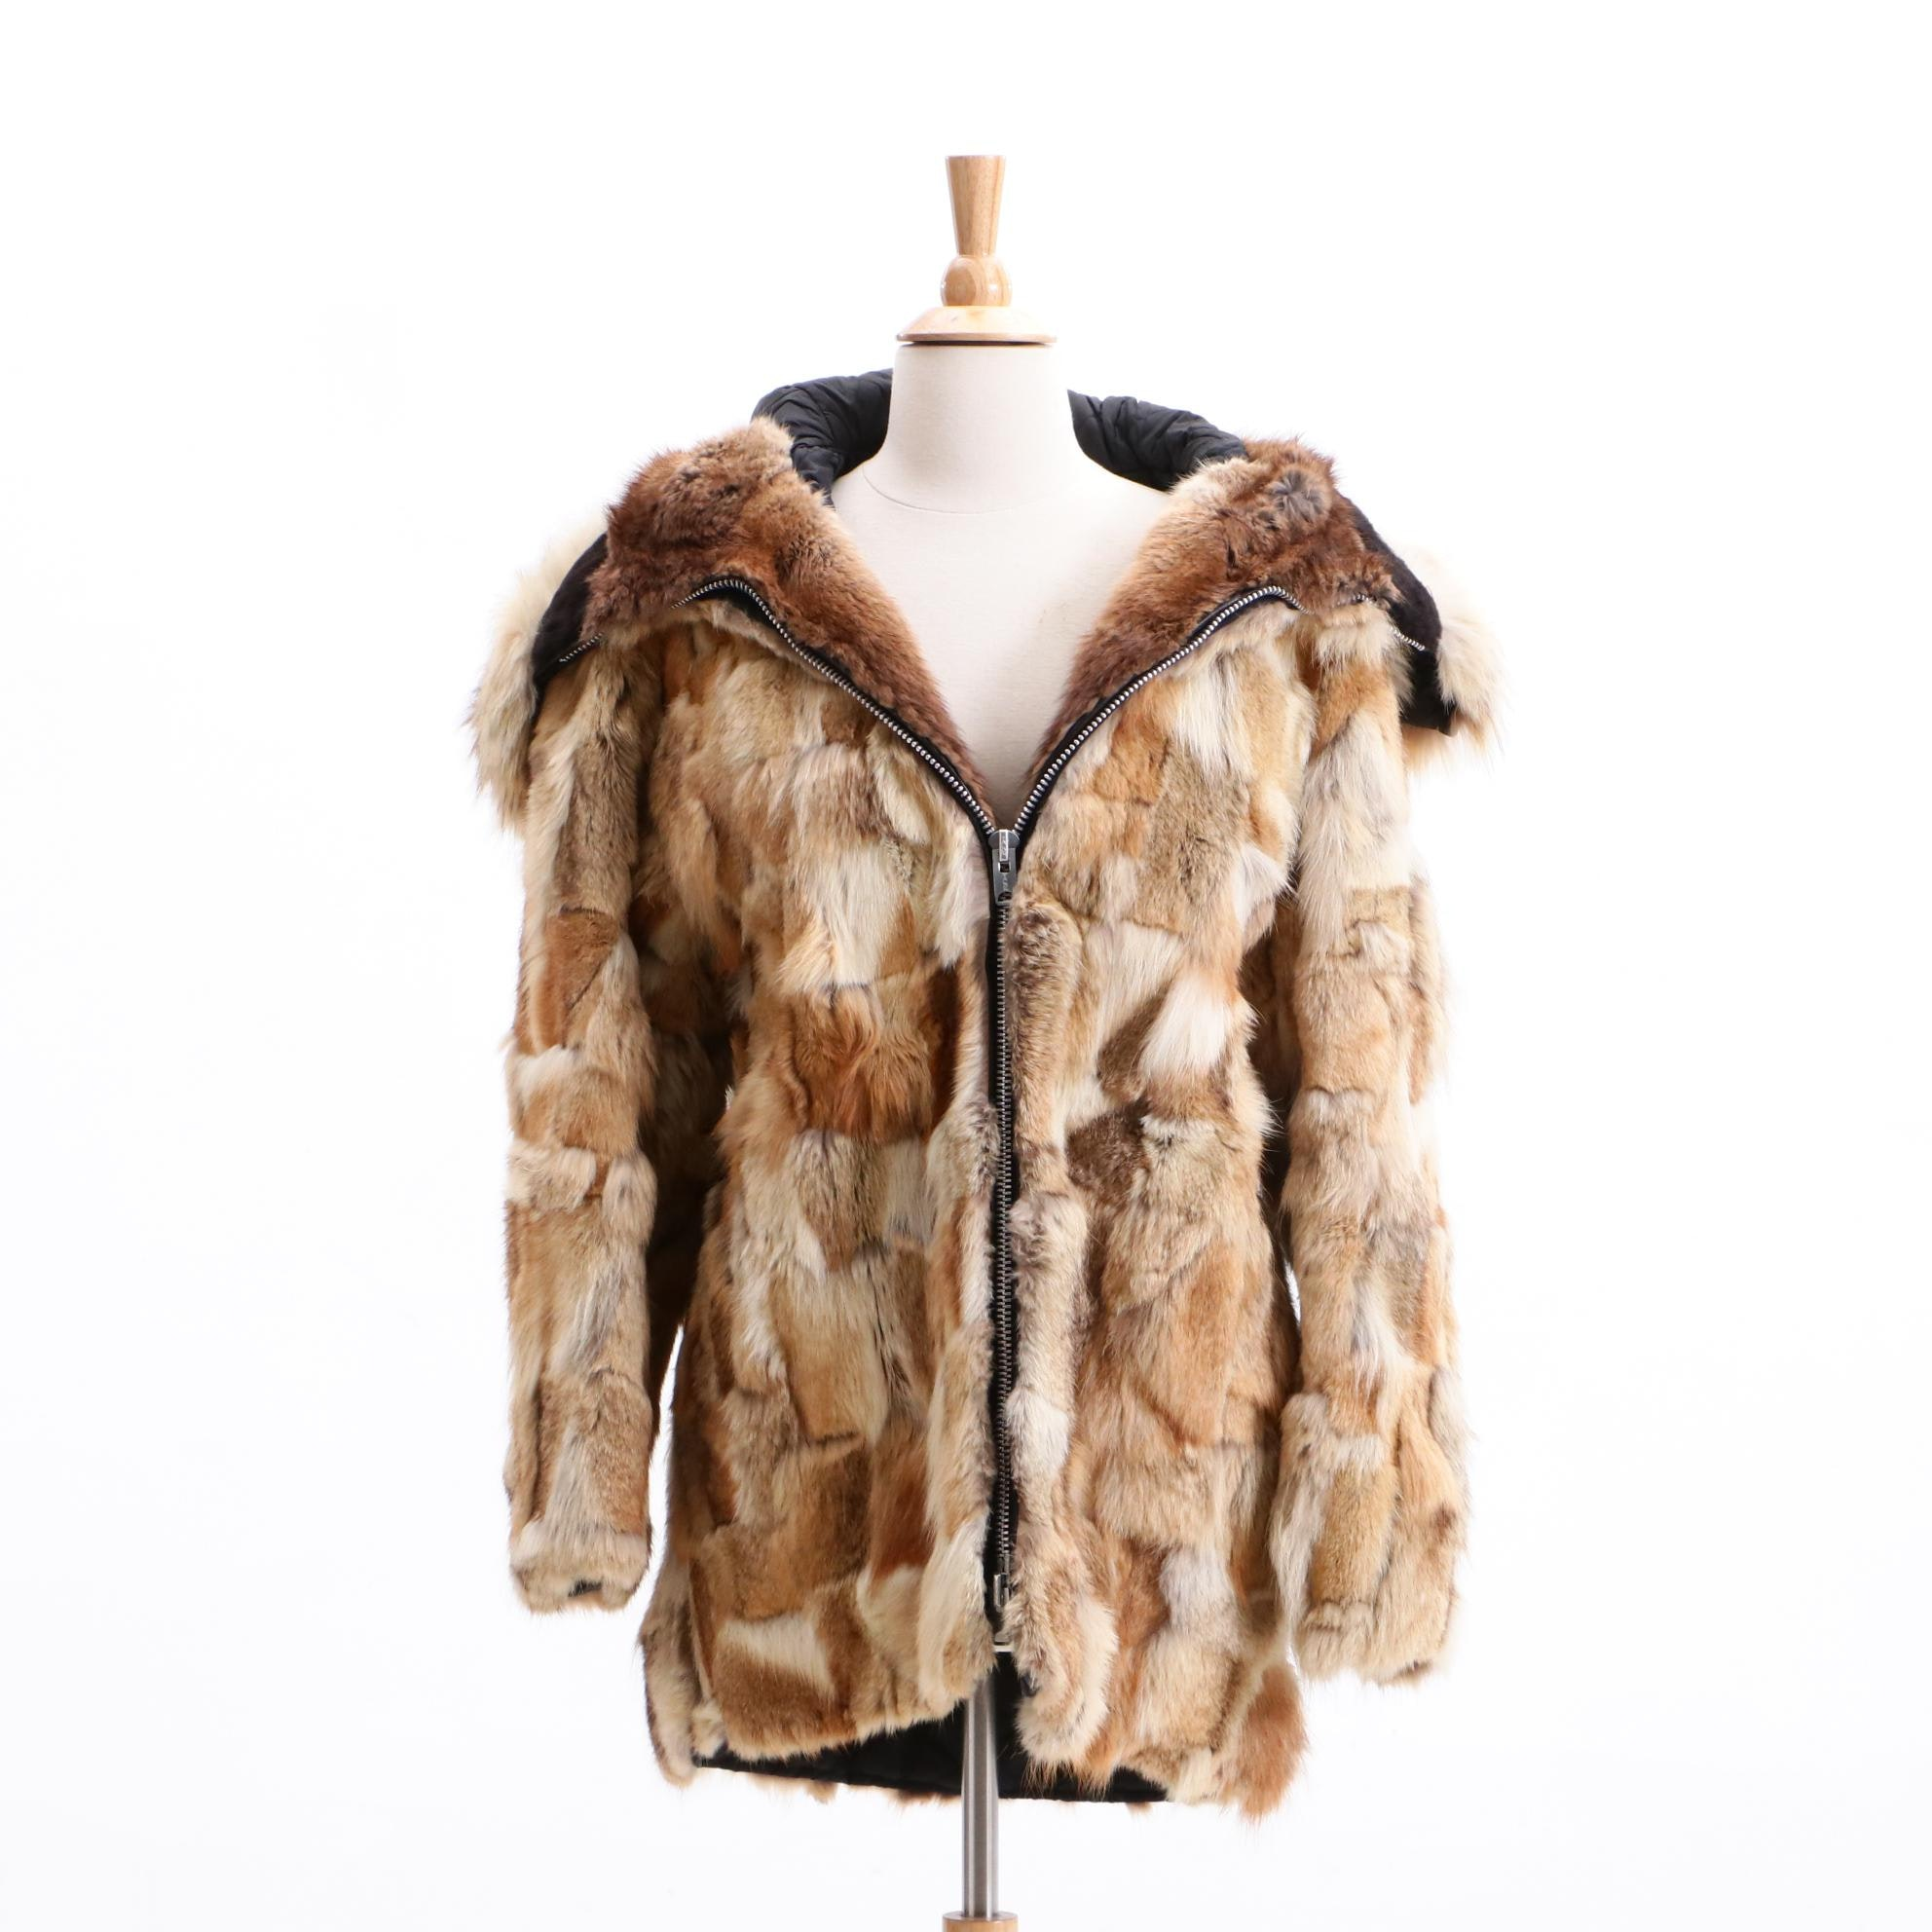 Vintage Anchorage Fur Factory Patchwork Coyote Fur Coat with Multiple Furs